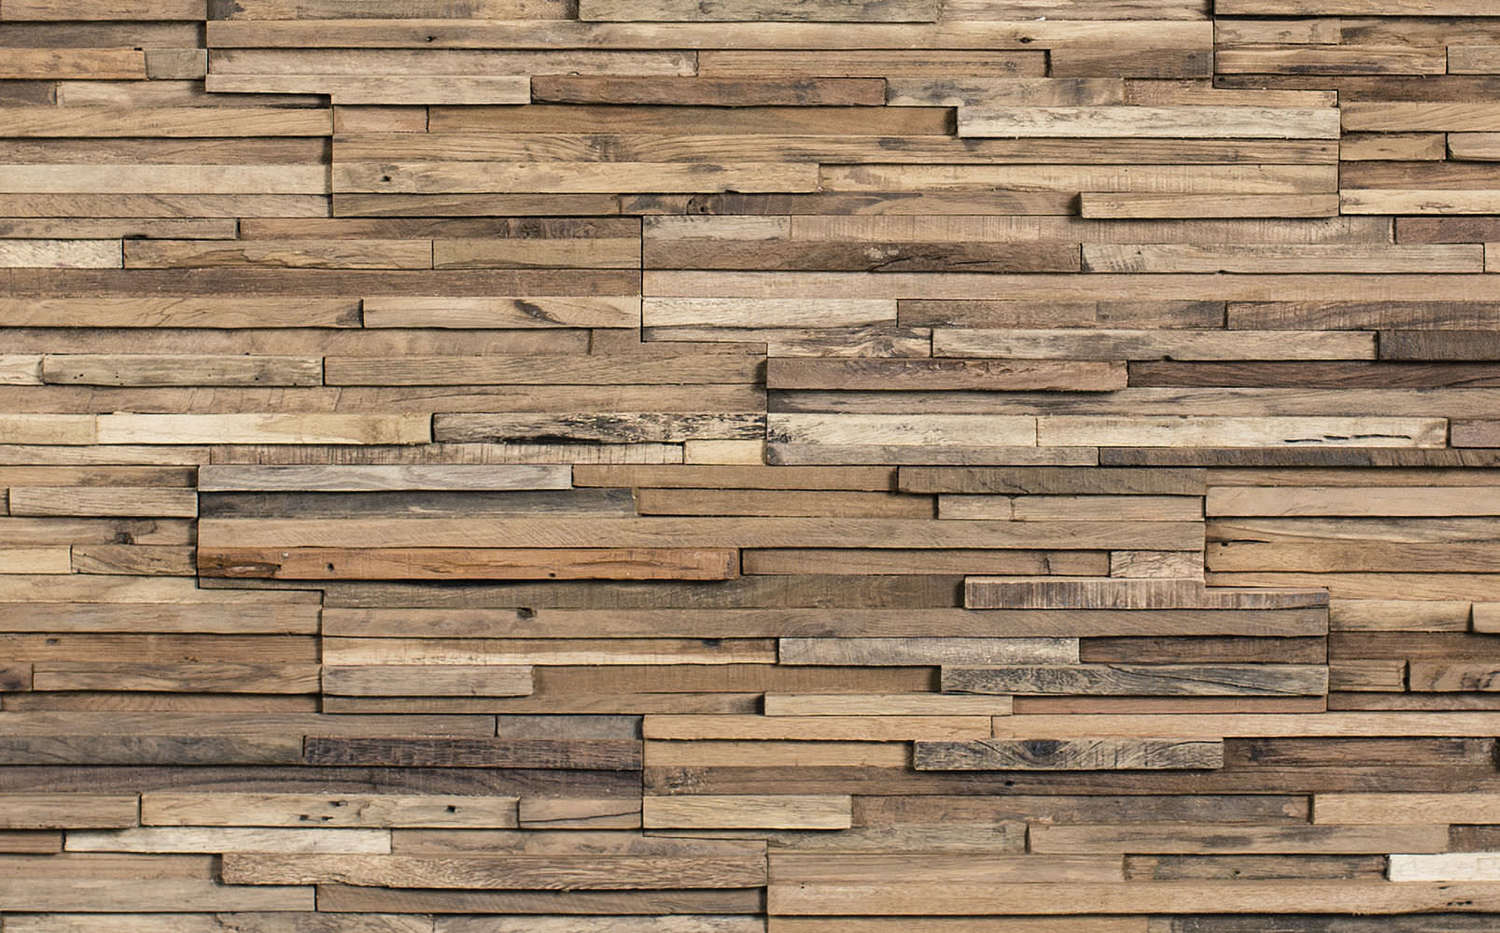 reclaimed wood supplier, reclaimed wood, old wood supplier UK, sale reclaimed wood UK